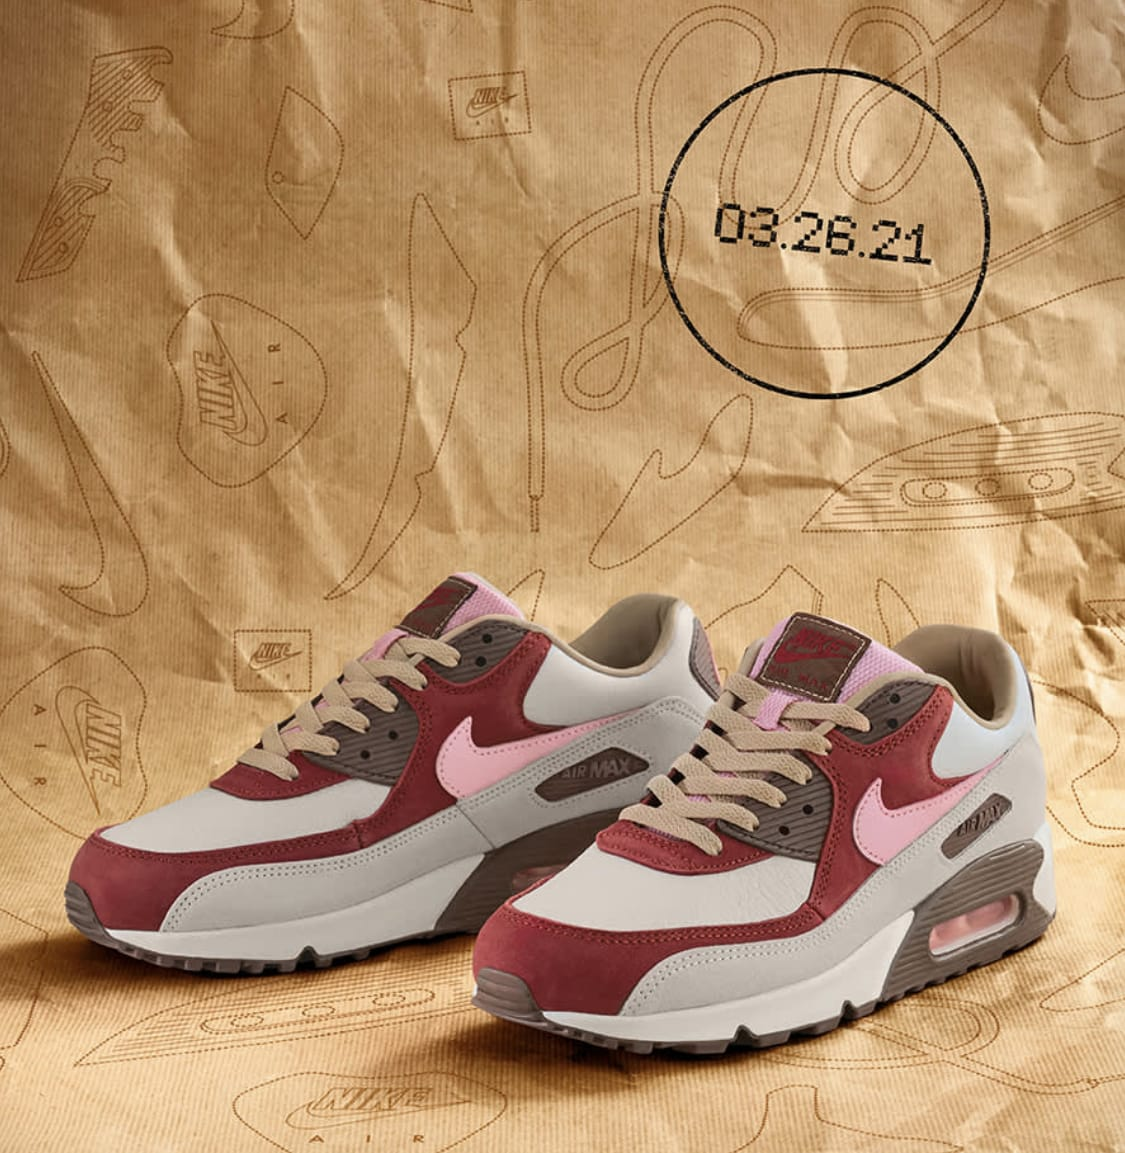 Nike Air Max 90 'Bacon' 2021 CU1816-100 Pair